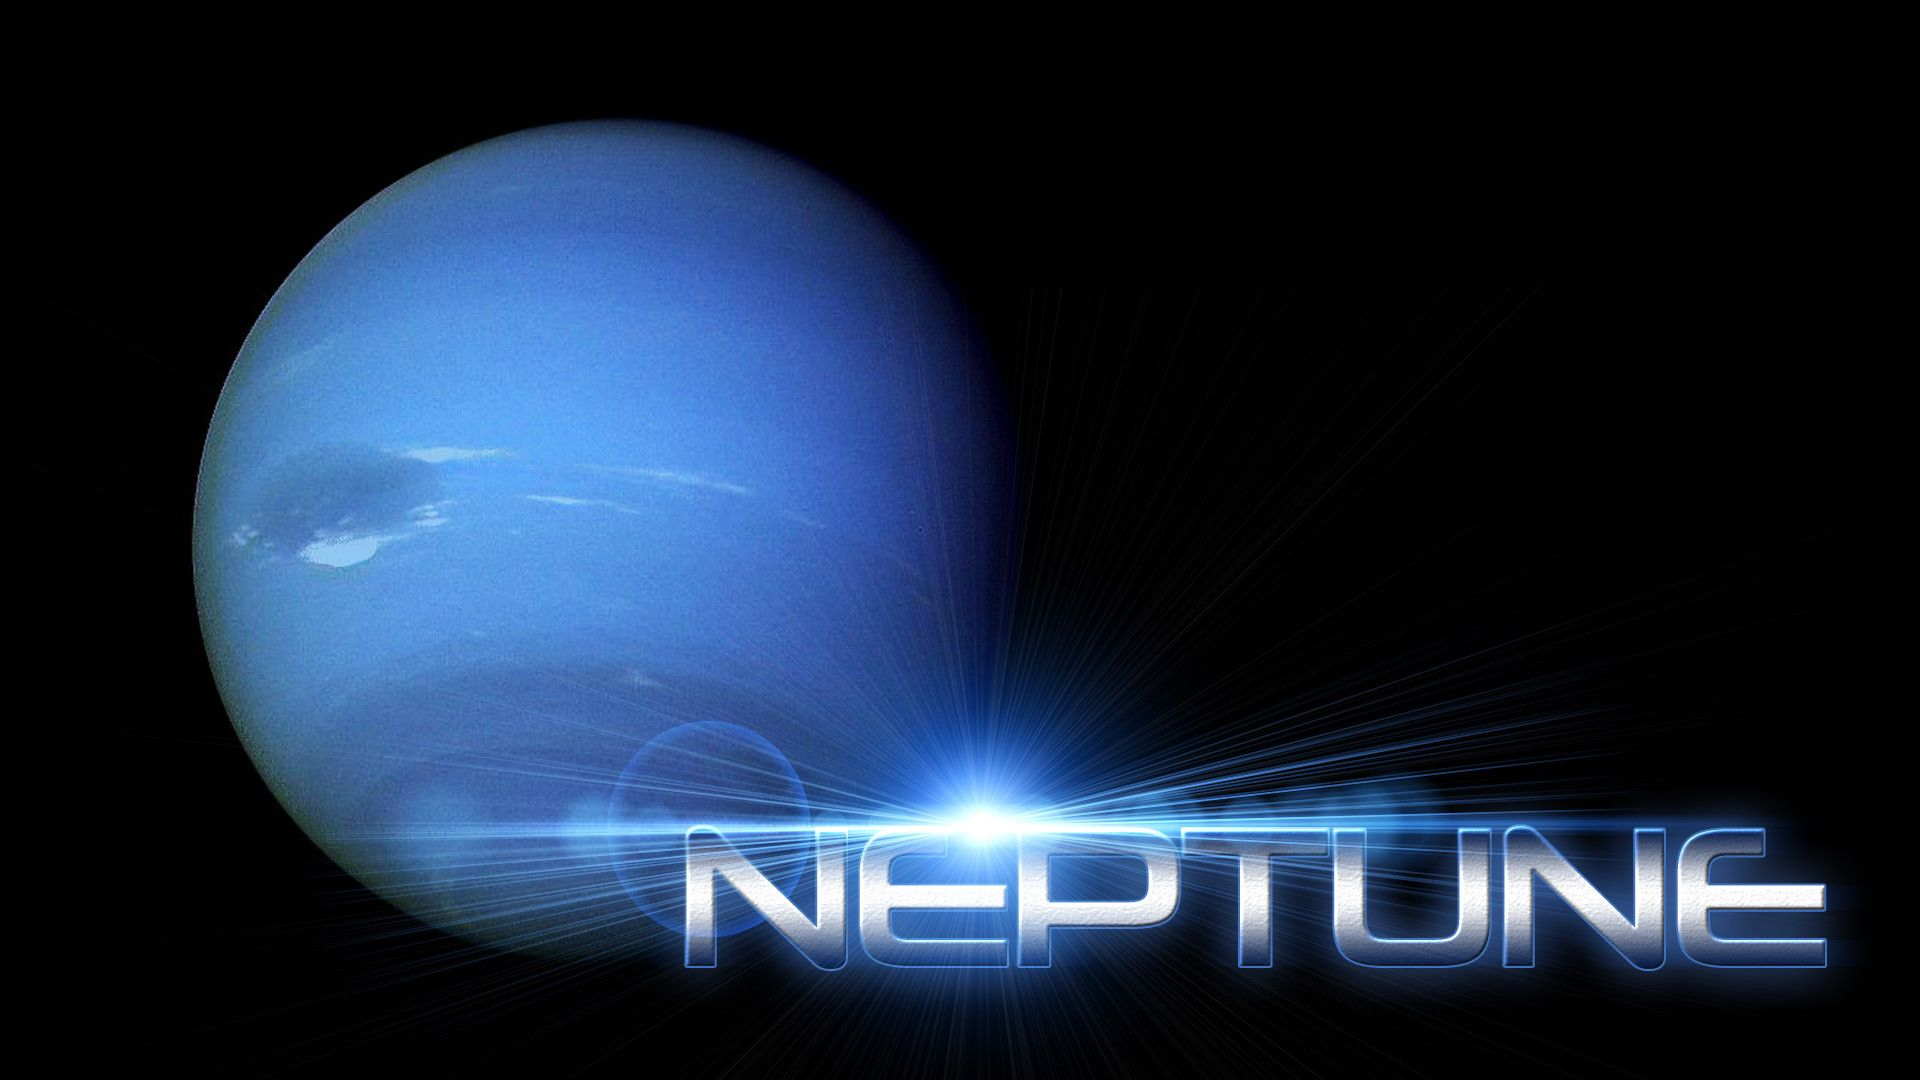 Neptune Wallpapers Top Free Neptune Backgrounds